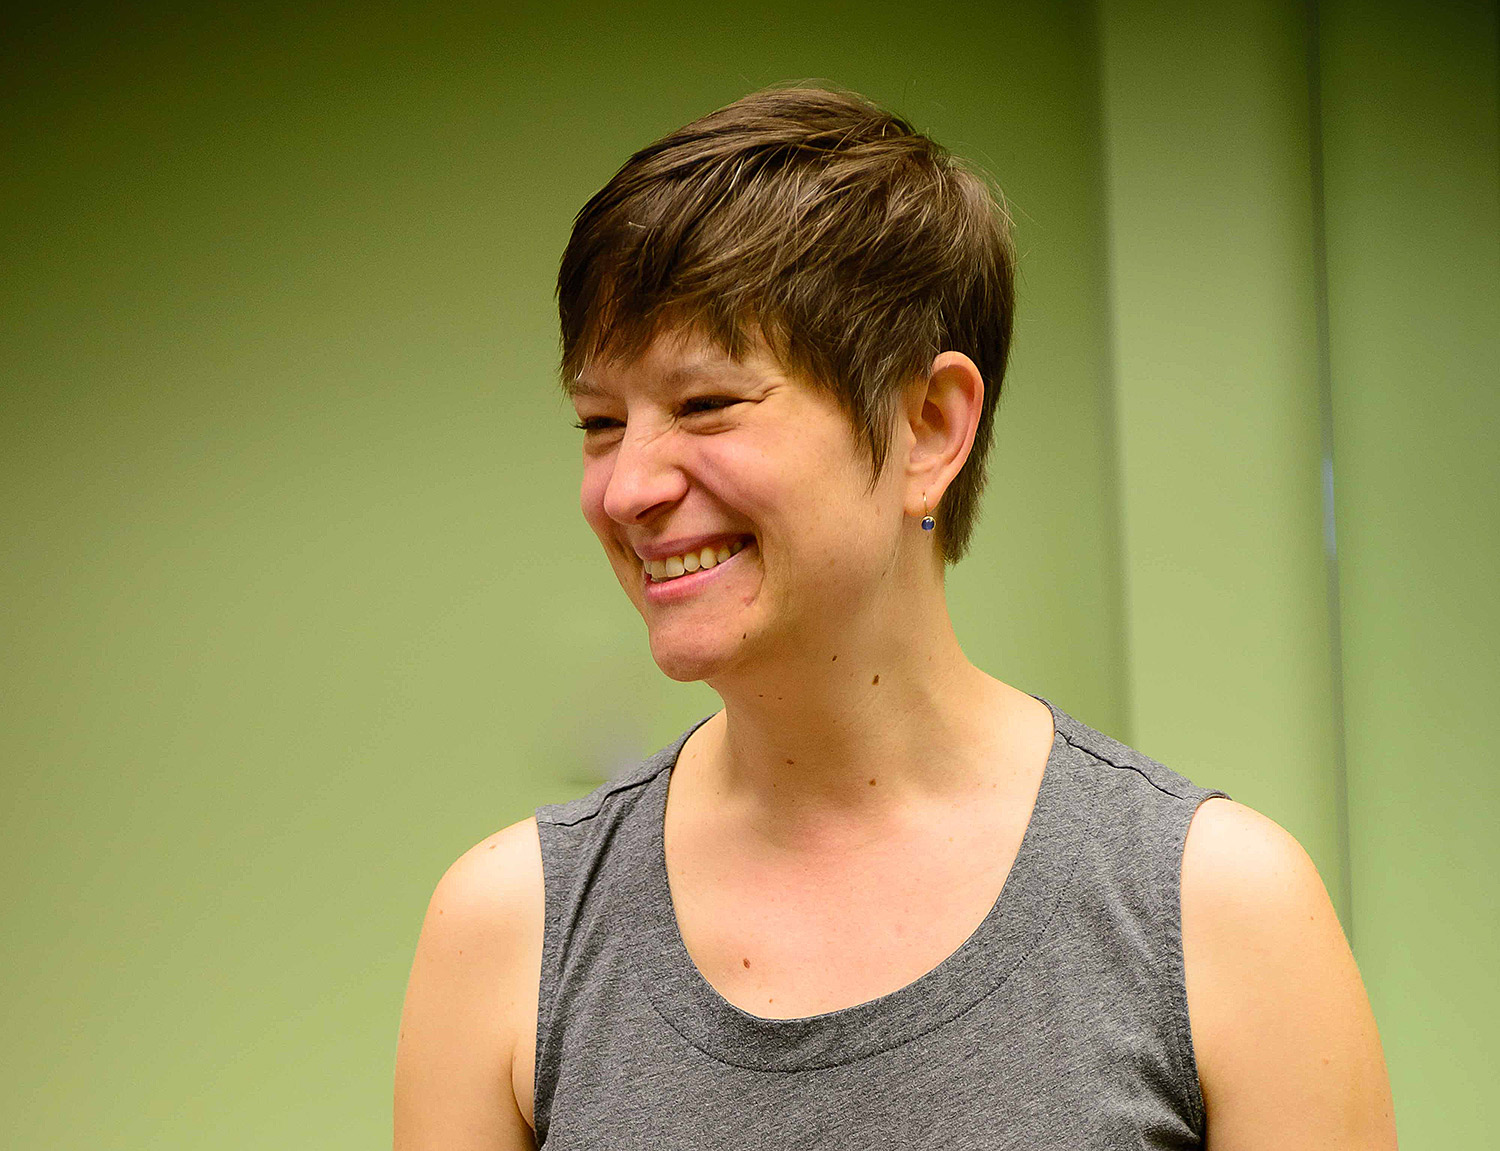 About Lisa - Lisa is a Somatic Experiencing® Practitioner here in Columbus, Ohio. She has completed the 216-hour Somatic Experiencing® Professional training and additional supervision and personal session requirements. Her areas of specialty include car accidents, falls, concussions, pelvic issues, as well as birth trauma.